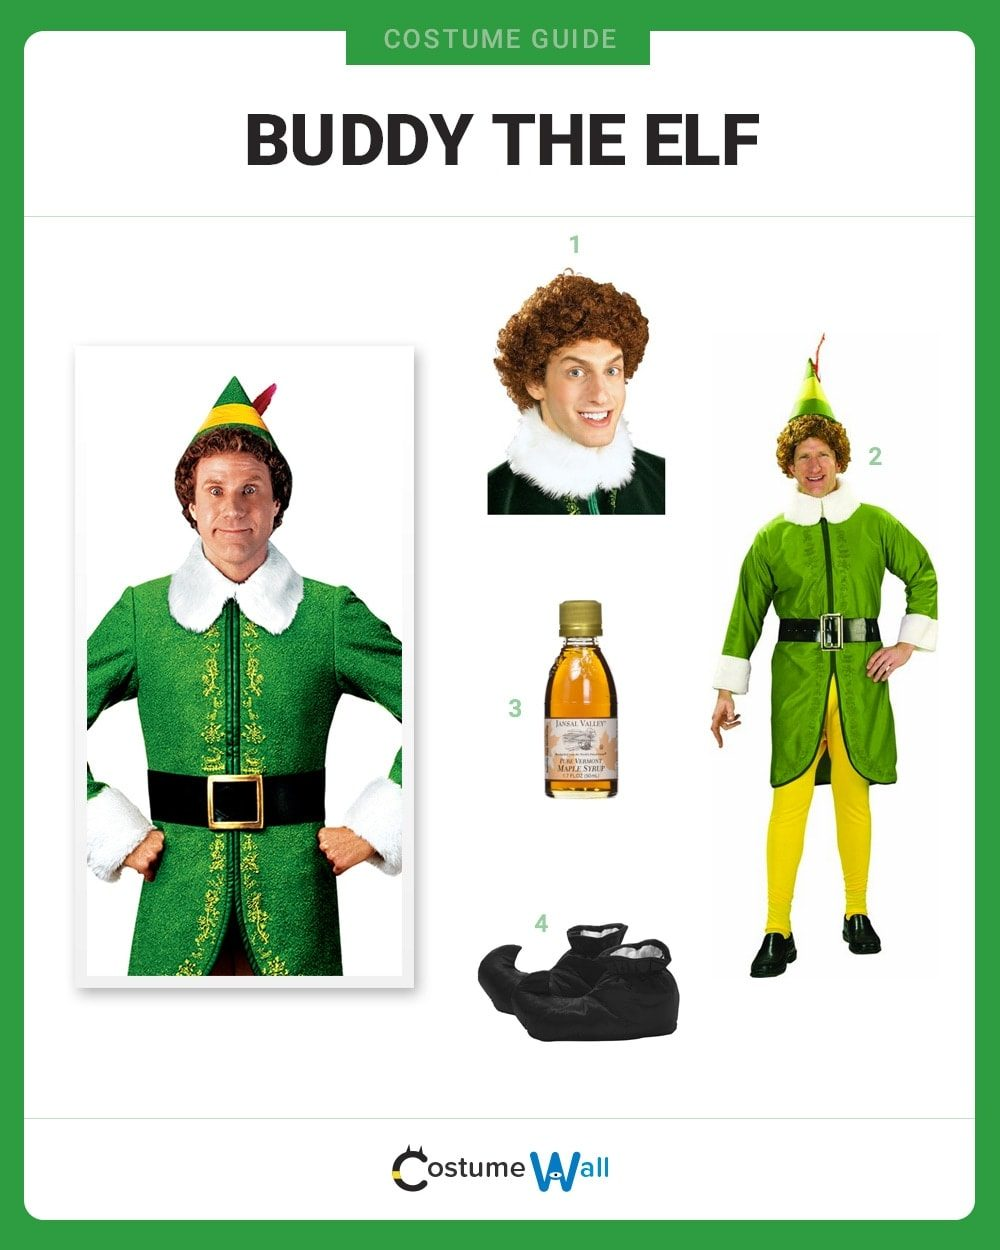 Buddy the Elf Costume Guide